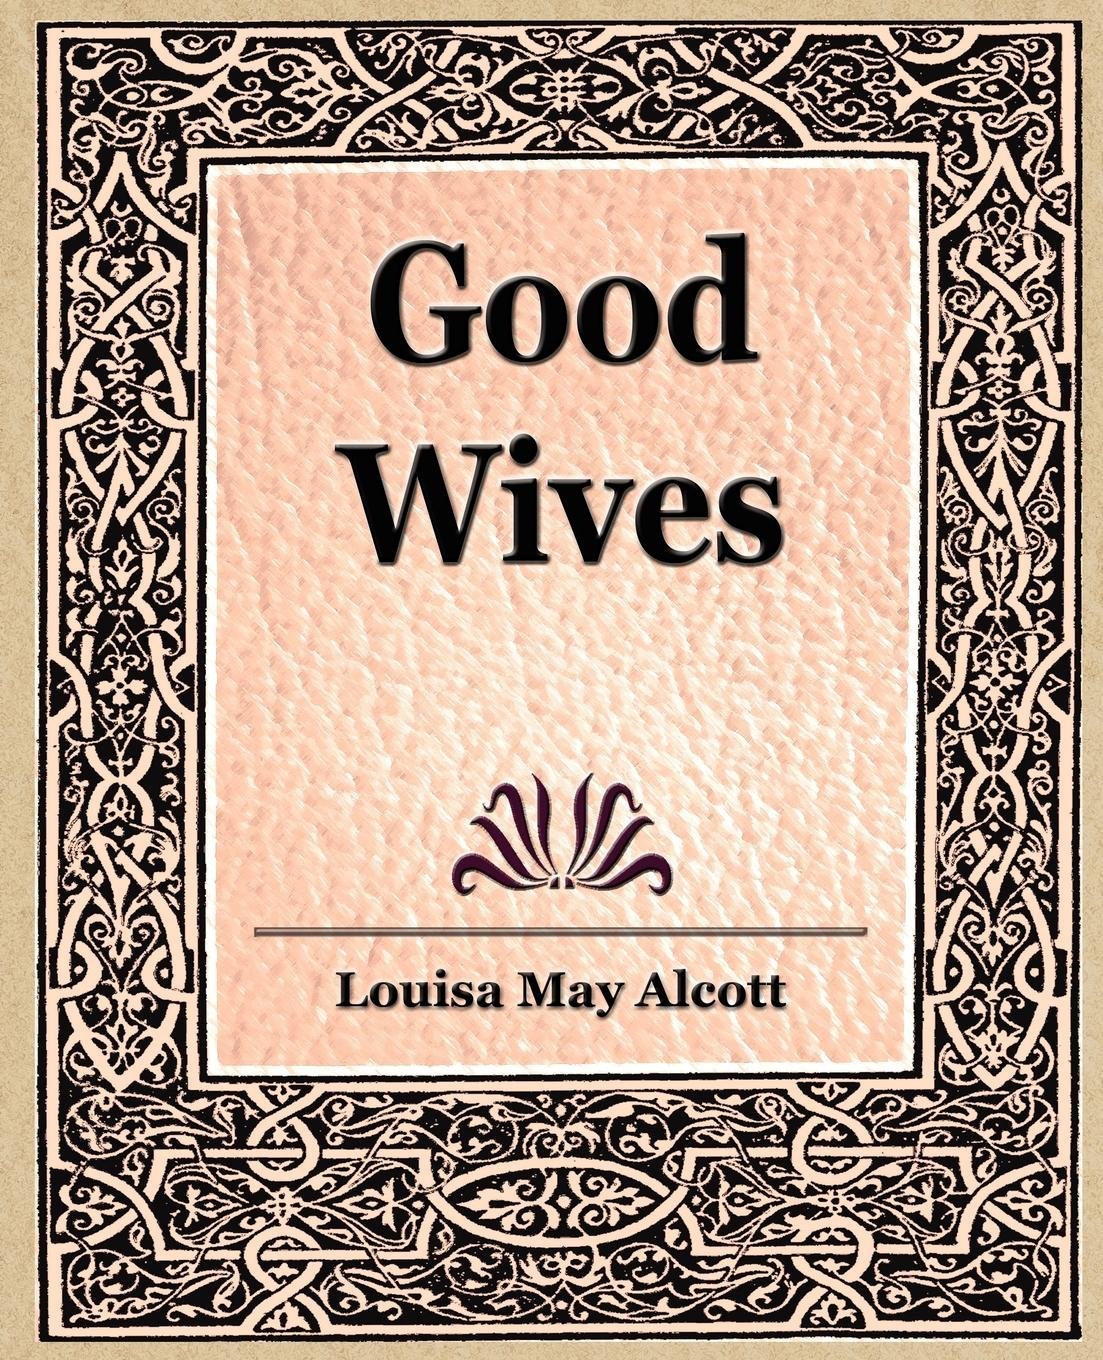 Louisa May Alcott, May Alcott Louisa May Alcott, Alcott Louisa May Good Wives may alcott louisa may alcott alcott louisa may jack and jill louisa may alcott